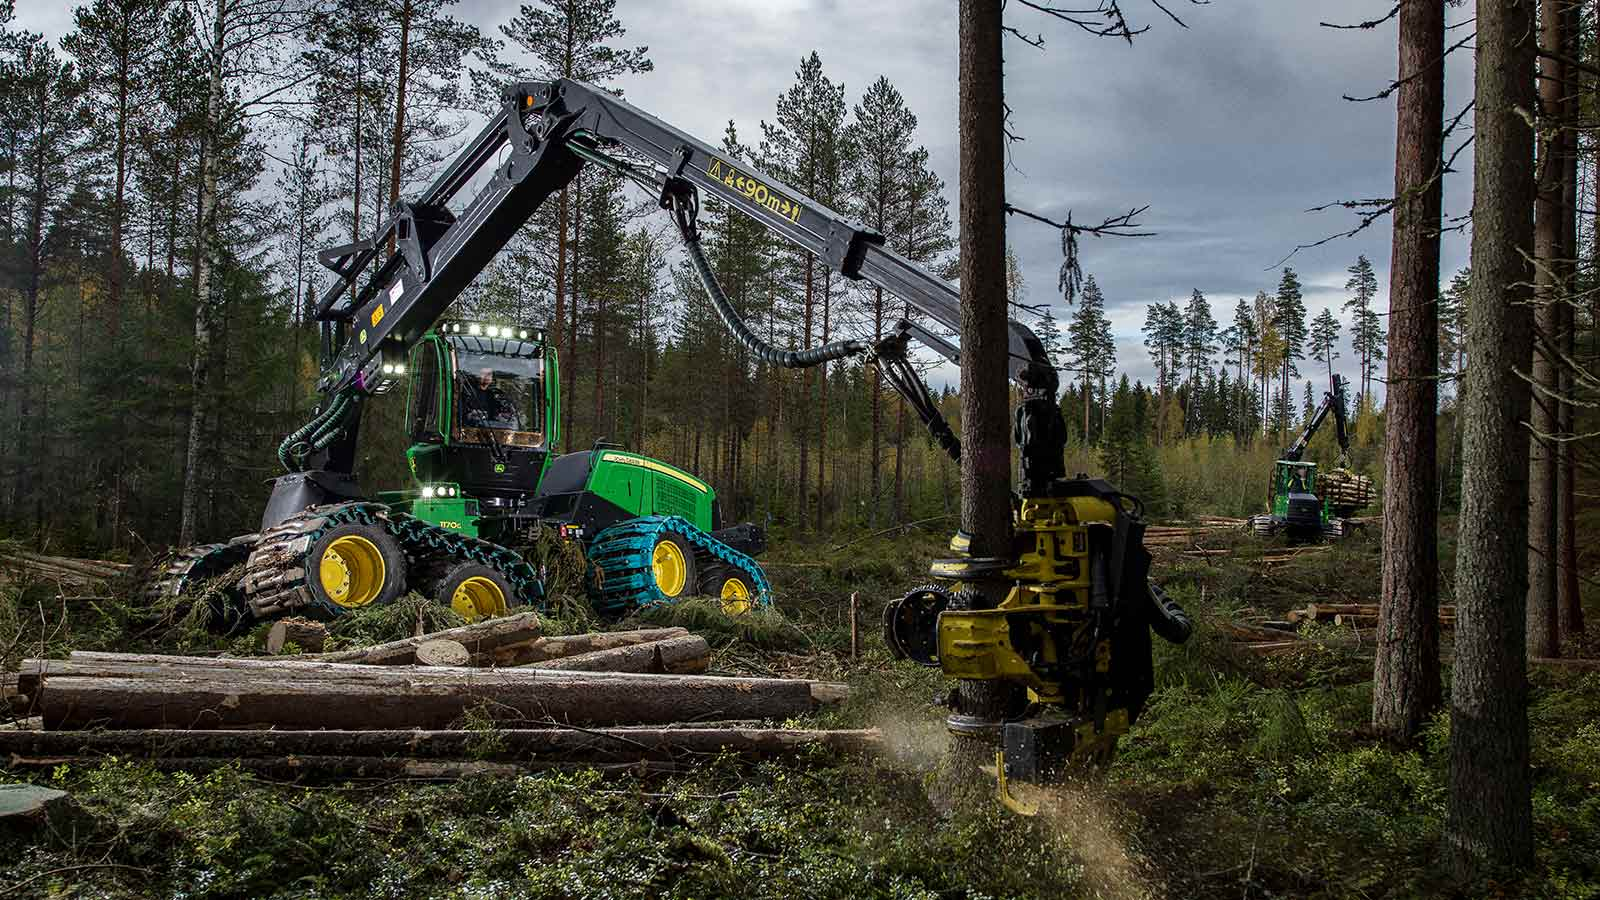 John Deere 1170G 8W Wheeled Harvester cutting down trees in the forest.